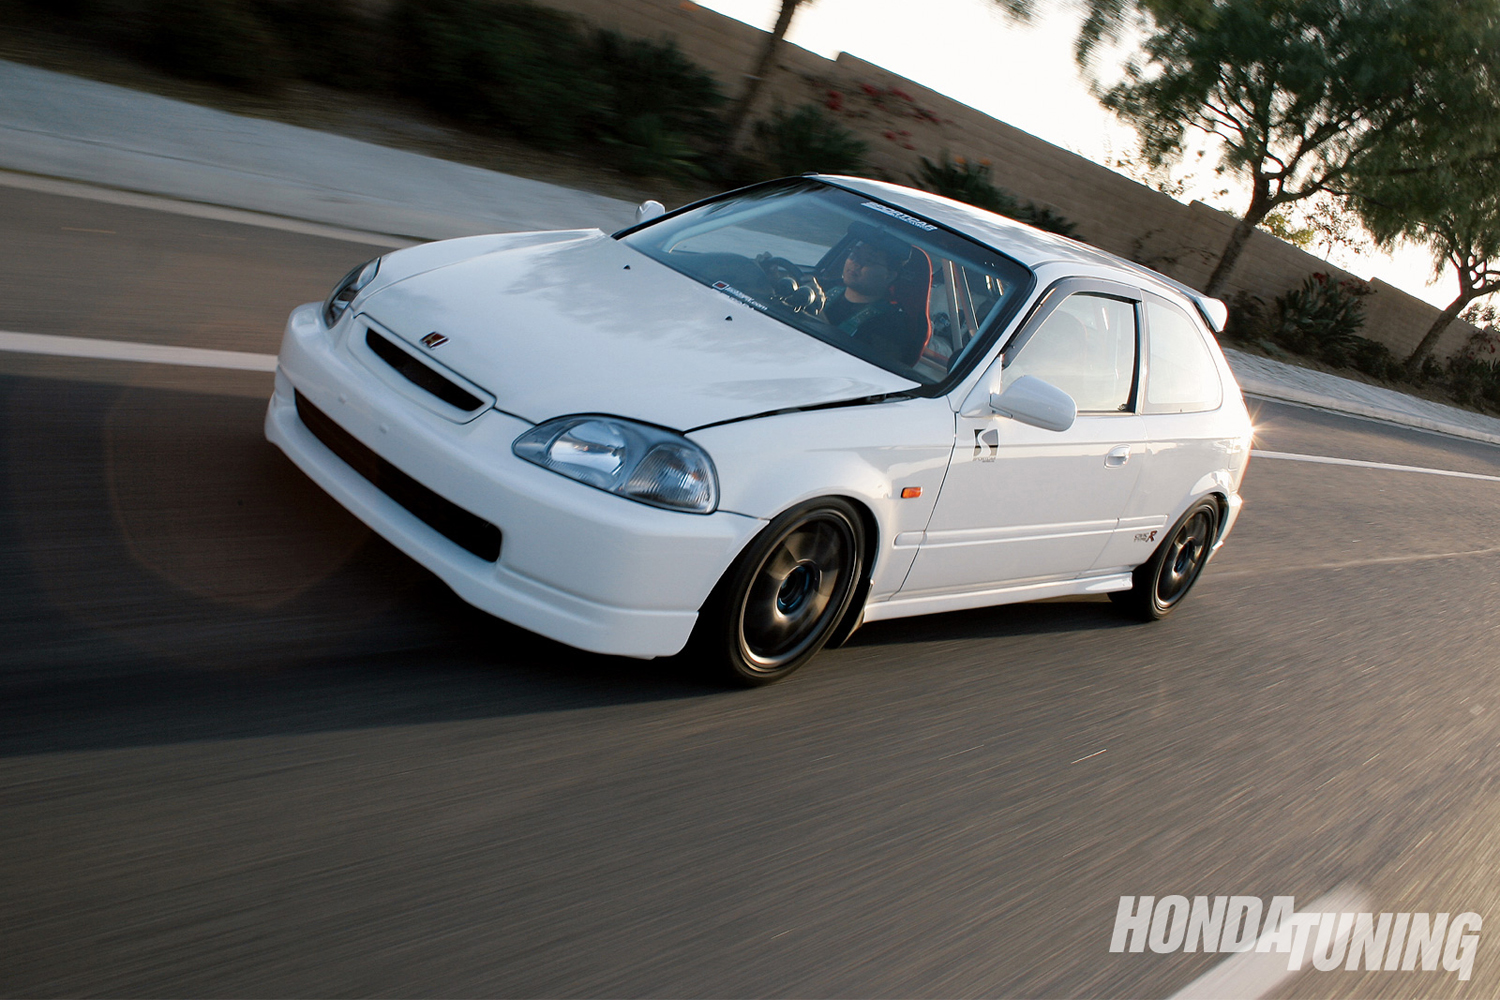 Honda Civic Type R 3 Door 1997